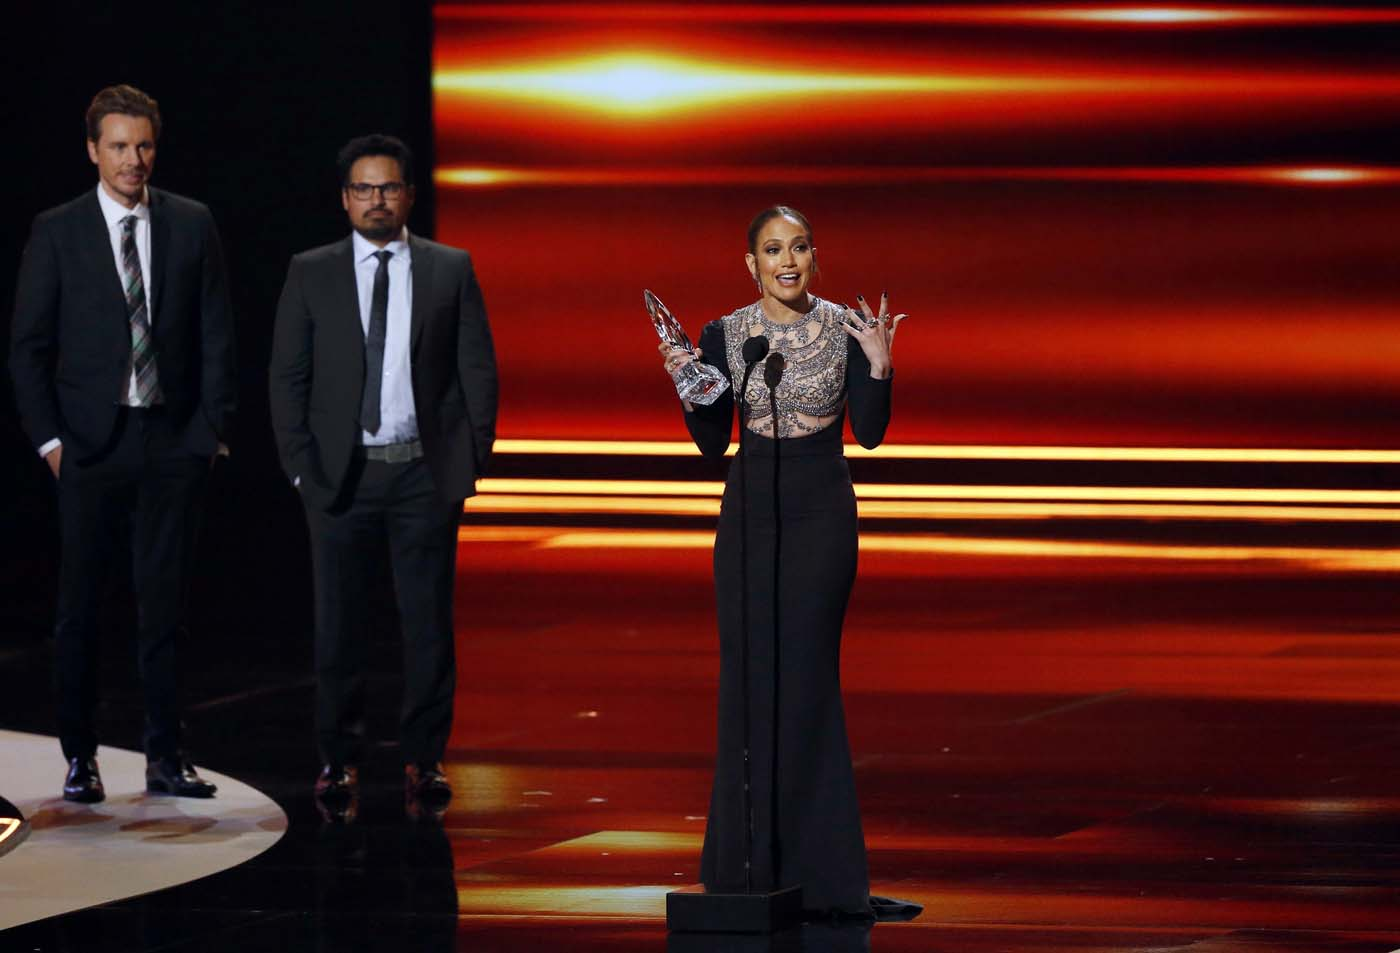 Actress Jennifer Lopez accepts the award for Favorite TV Crime Drama Actress as actors Dax Shepard (L) and Michael Pena look on during the People's Choice Awards 2017 in Los Angeles, California, U.S., January 18, 2017.   REUTERS/Mario Anzuoni